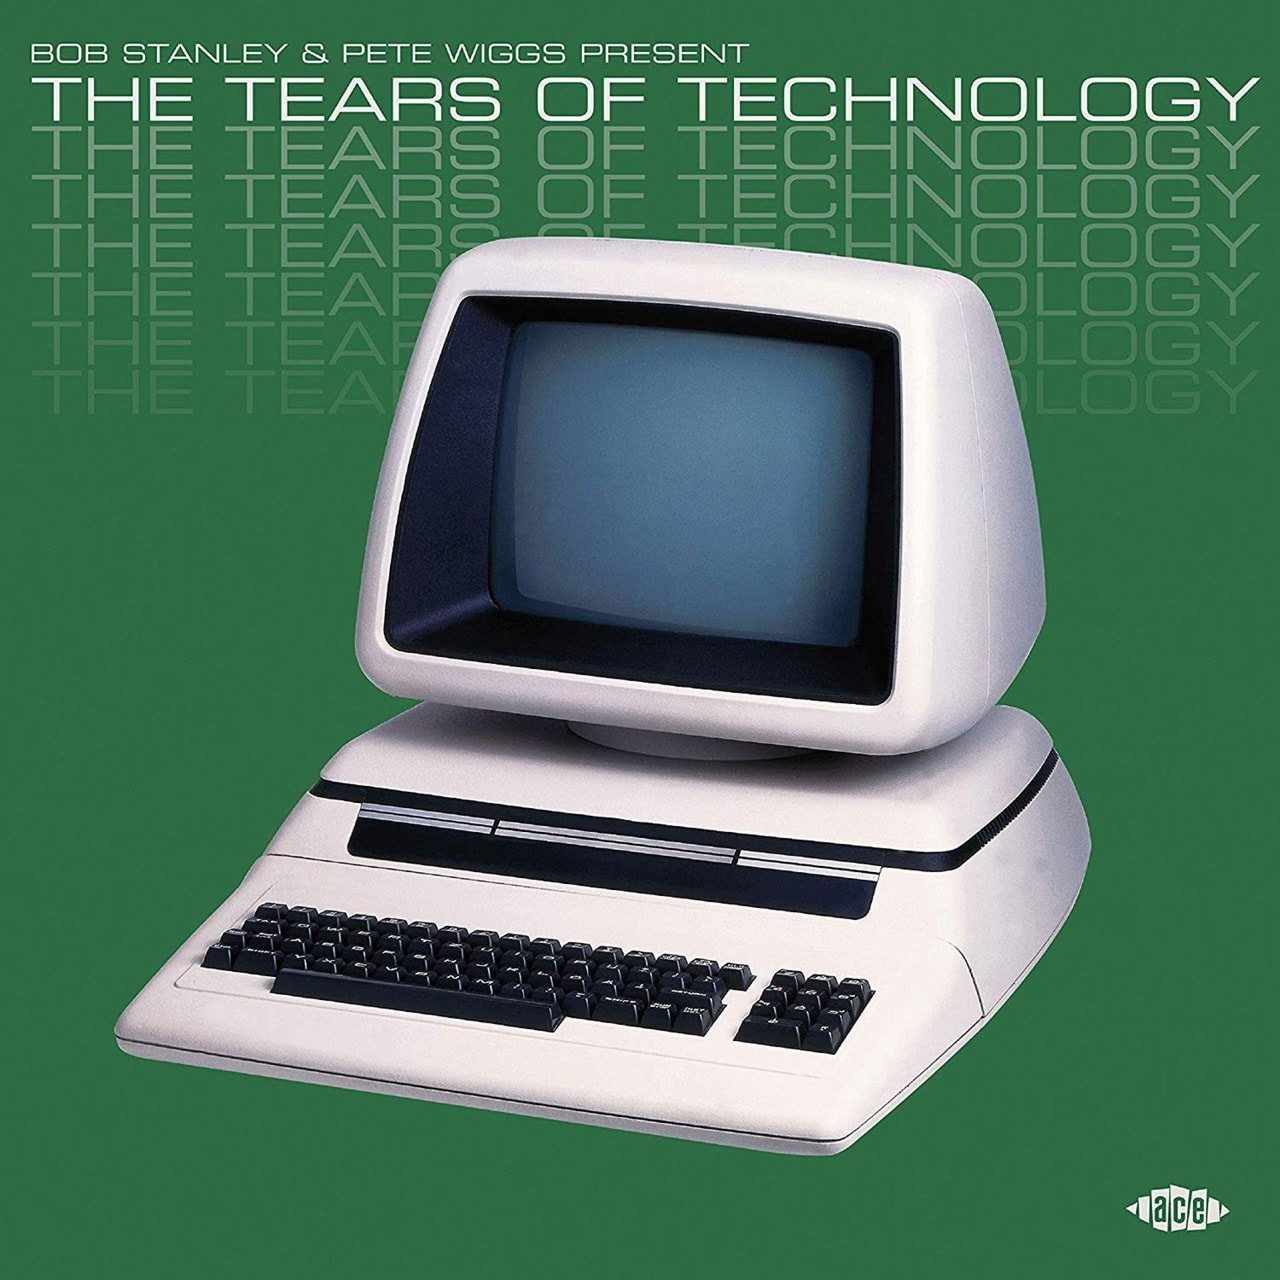 Bob Stanley & Pete Wiggs Present the Tears of Technology - 1